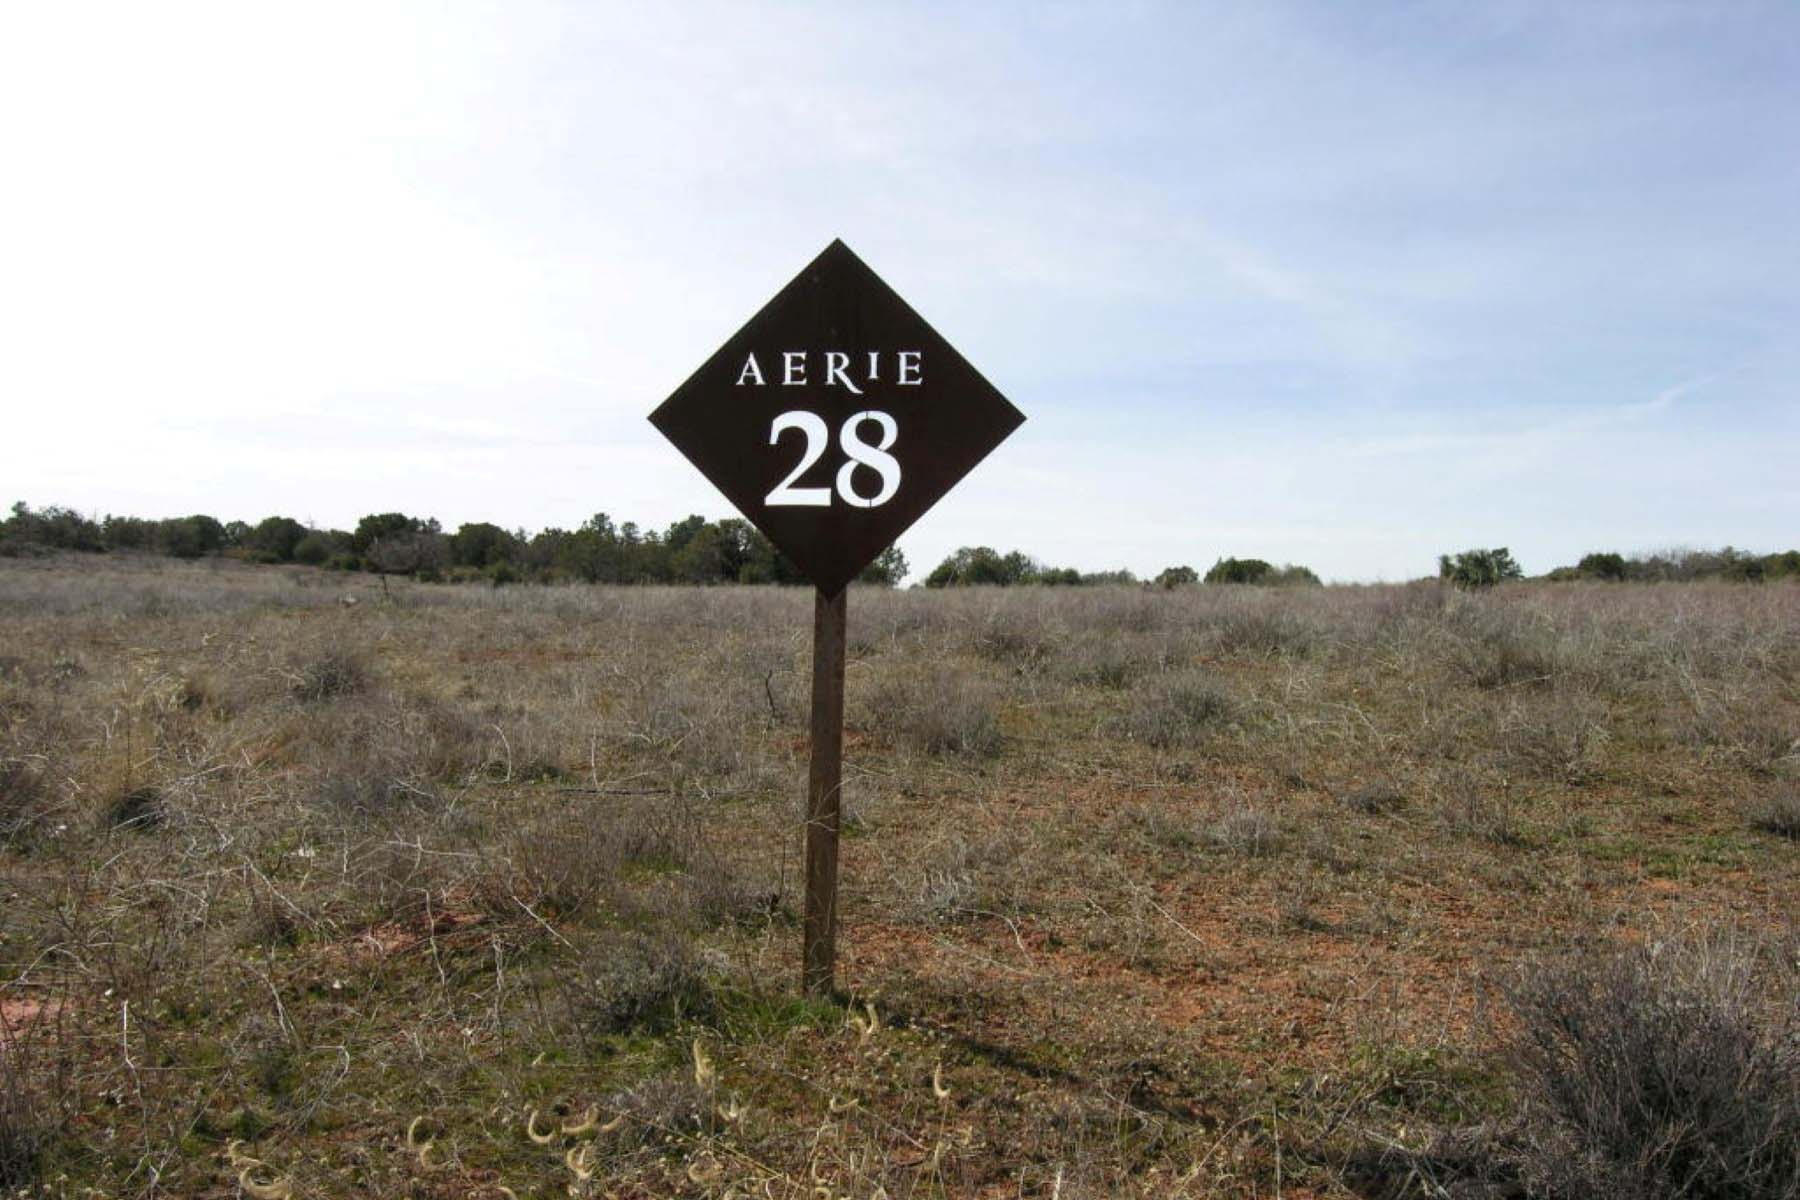 Land for Sale at Pristine acres backing the National Forest. 360-370 Aerie RD Sedona, Arizona 86336 United States